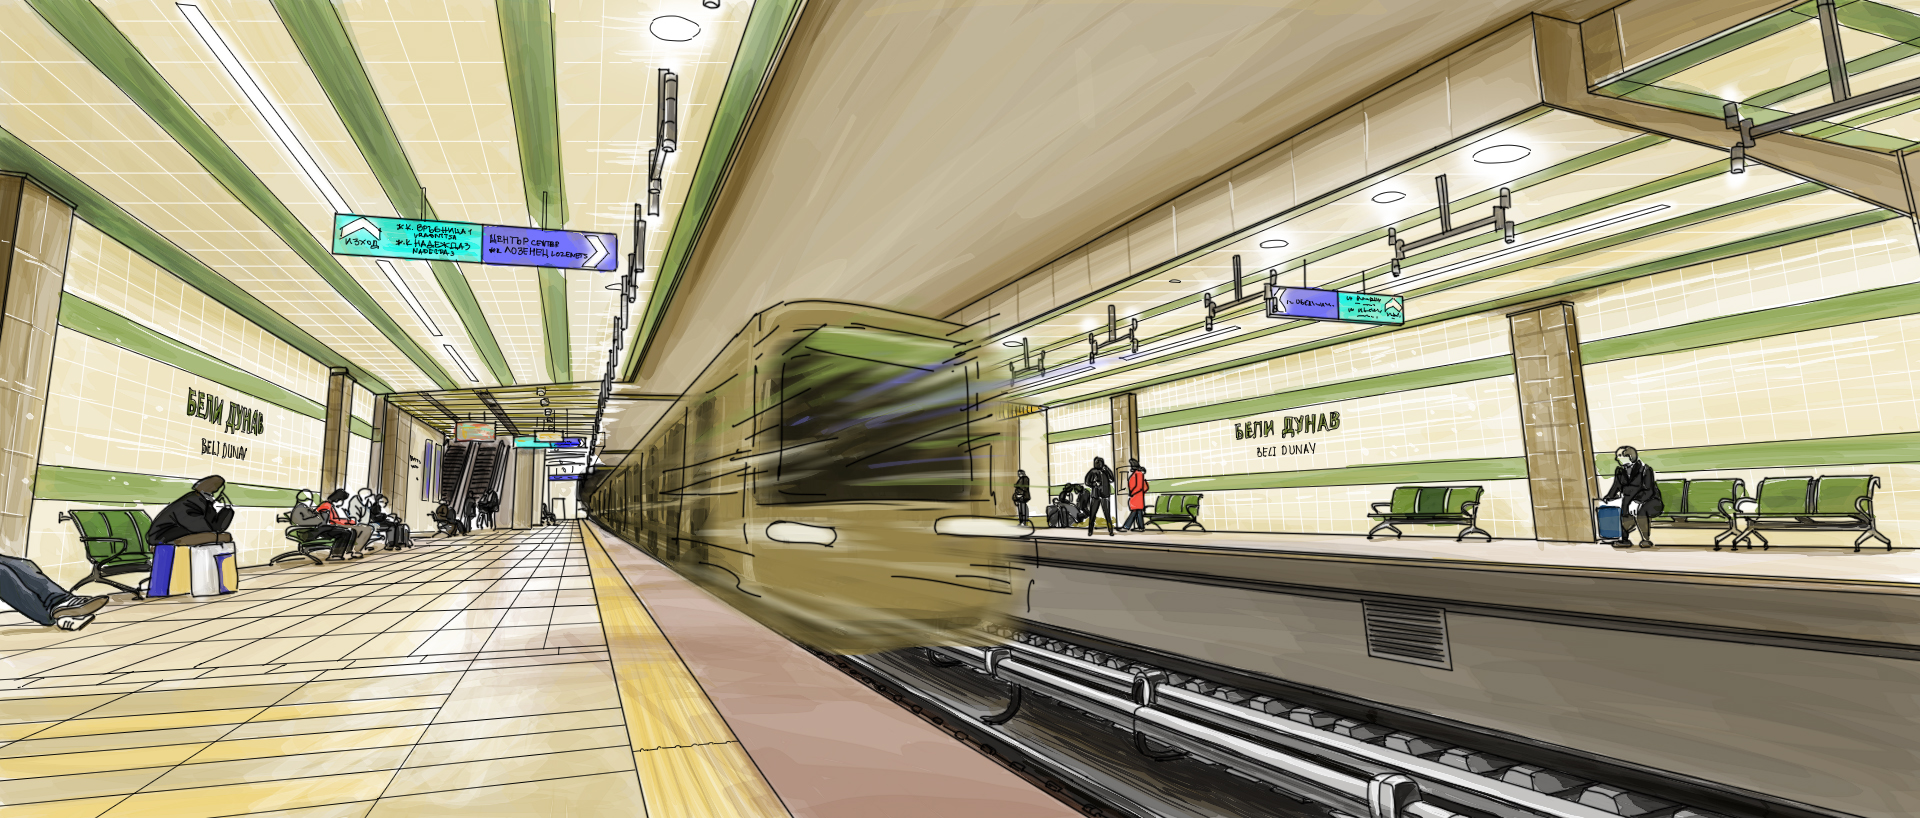 Sketchy09-train-in-the-metrostation